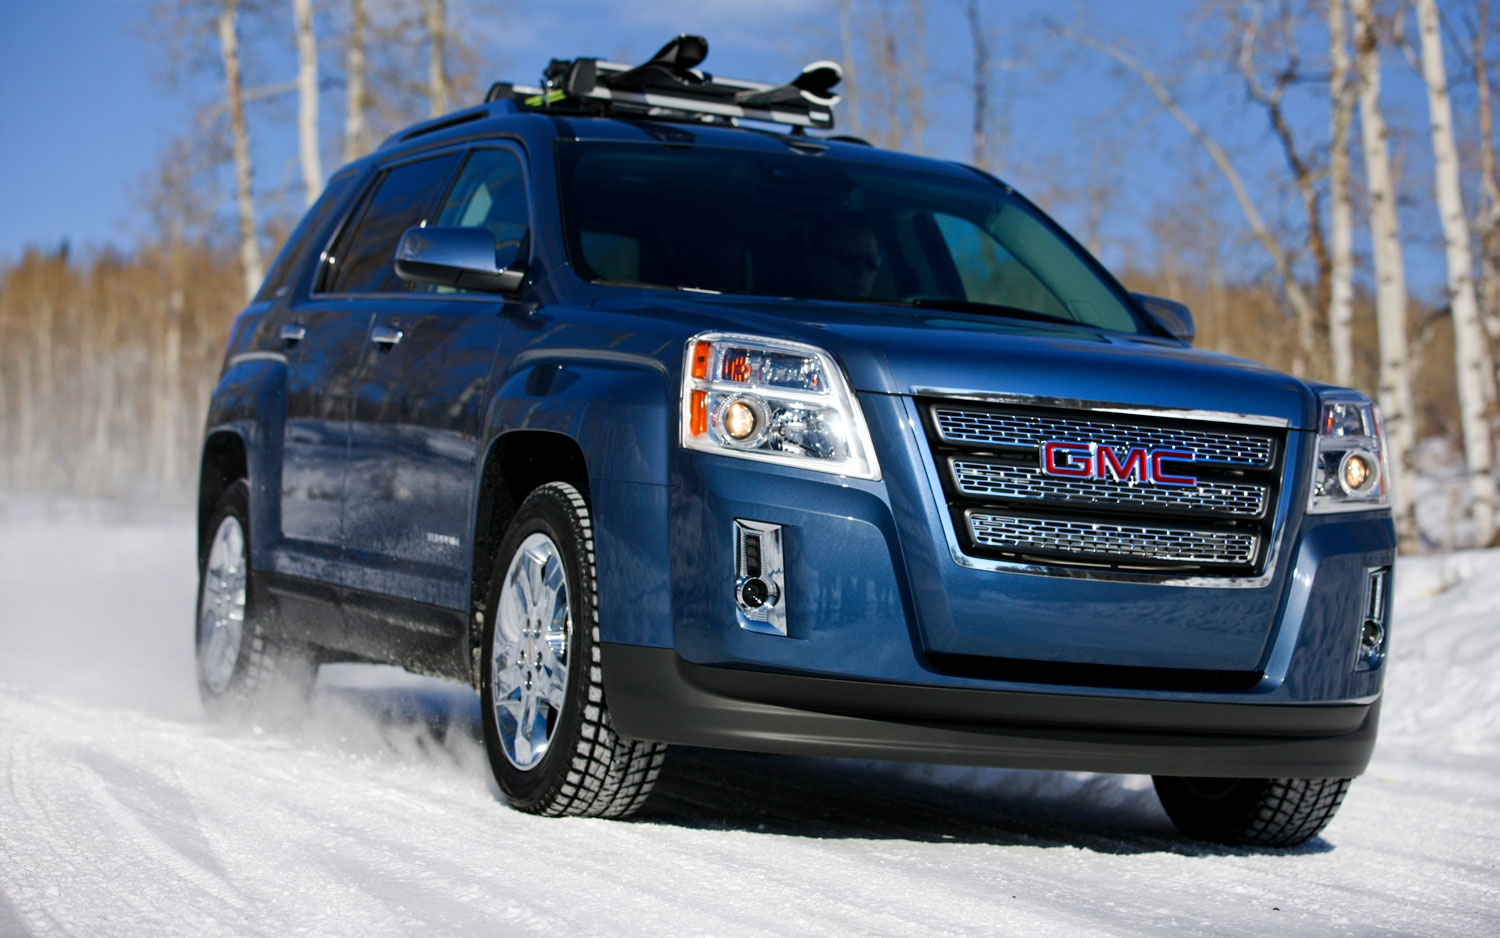 2016 Gmc Terrain – pictures, information and specs - Auto ...